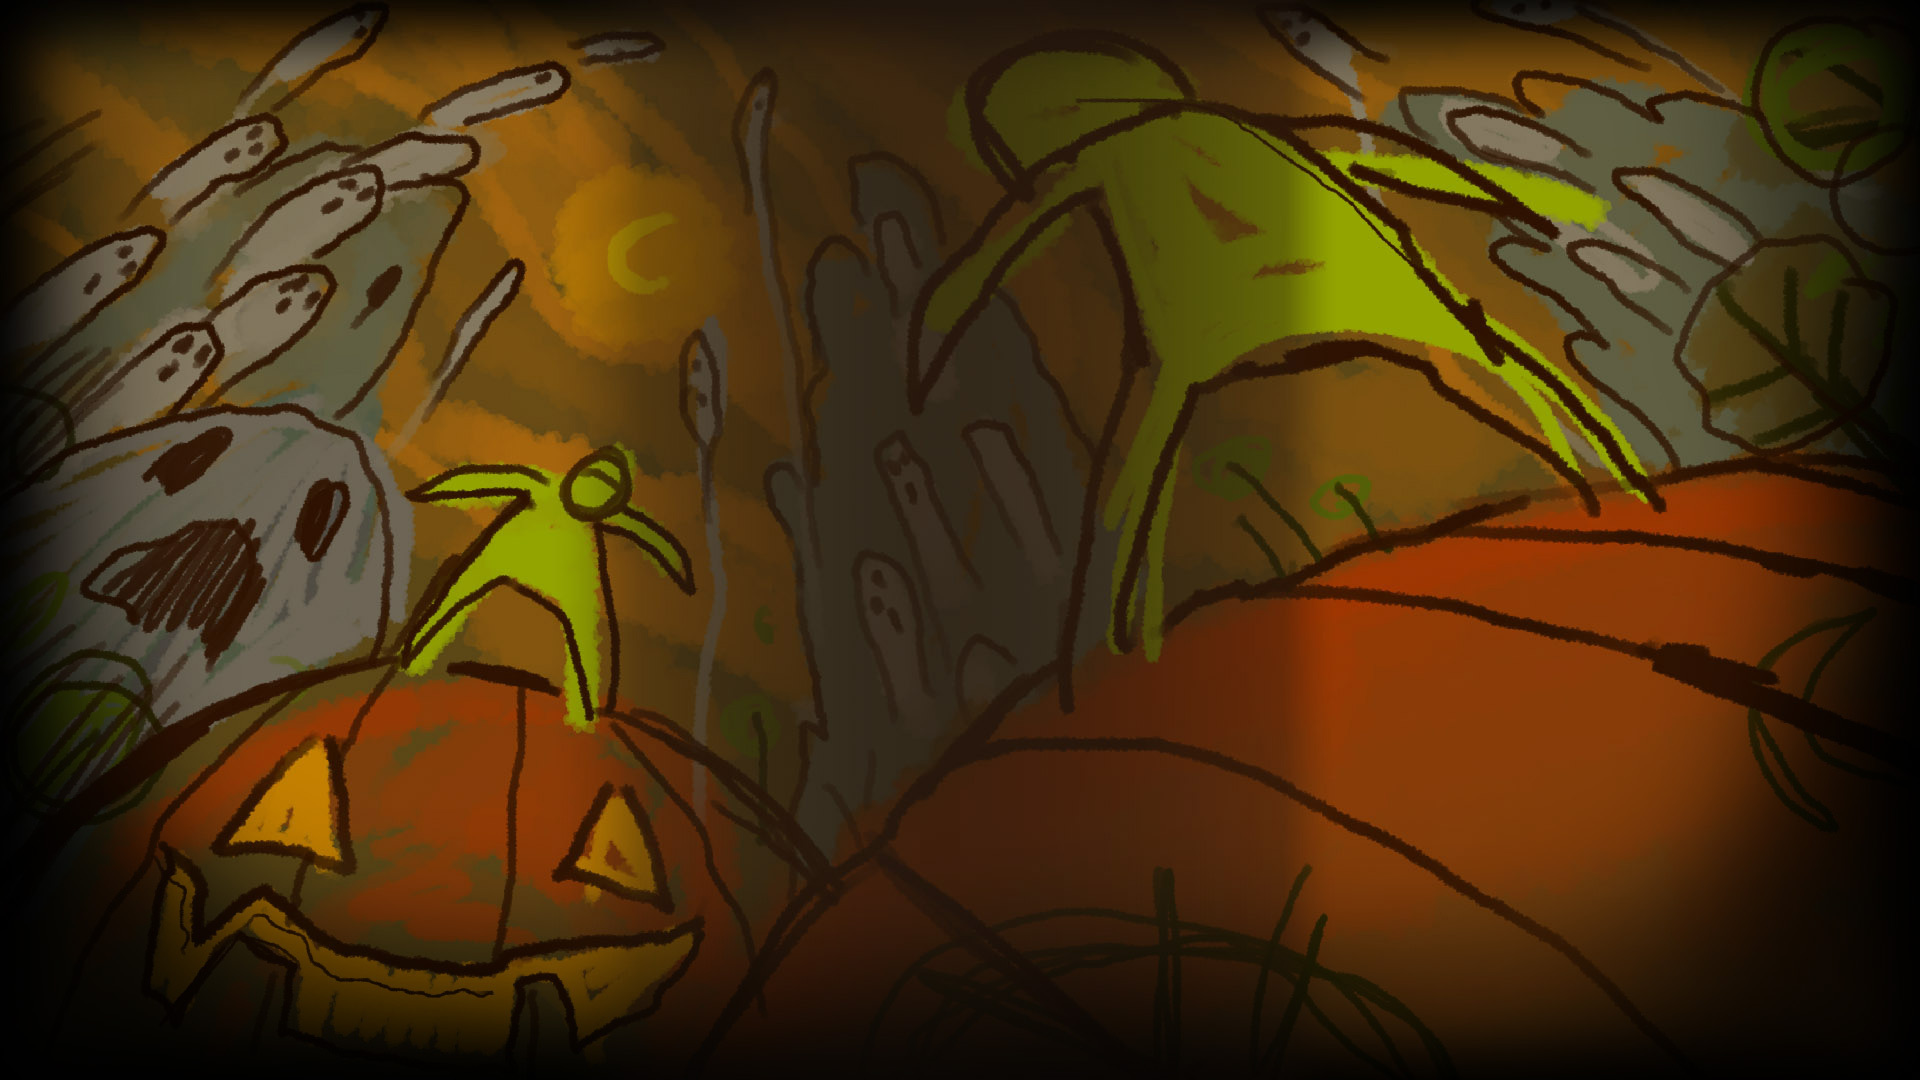 Costume Quest Background Battle Arena.jpg & Image - Costume Quest Background Battle Arena.jpg | Steam Trading ...